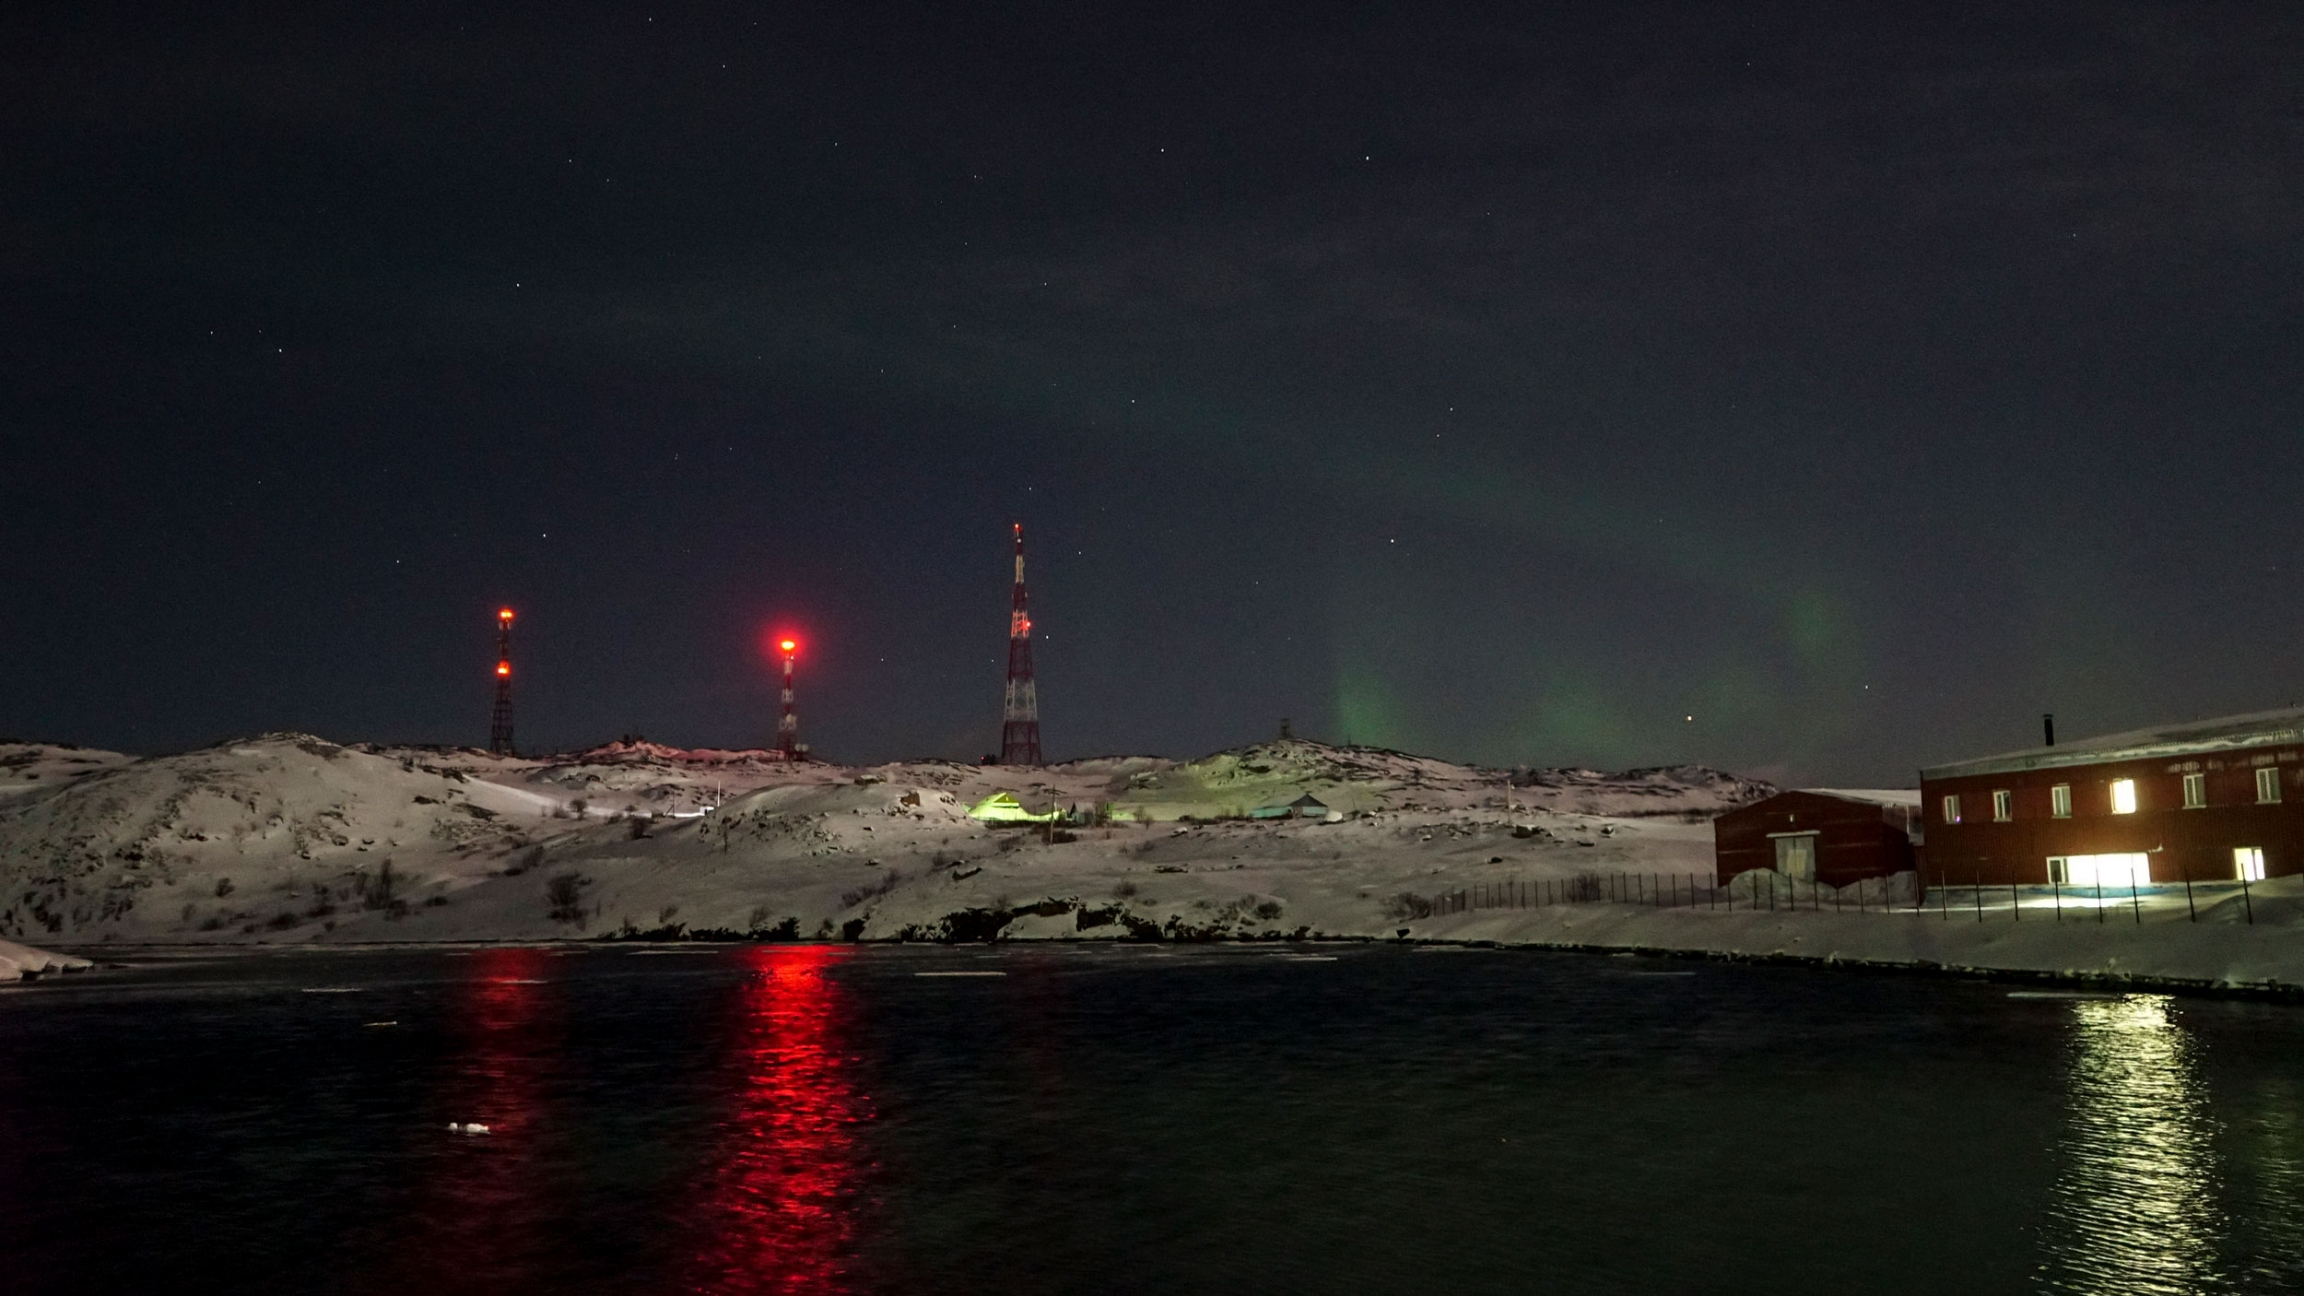 A green swirl of the northern lights is shown against a dark sky with antennas with red lights in the nearground.